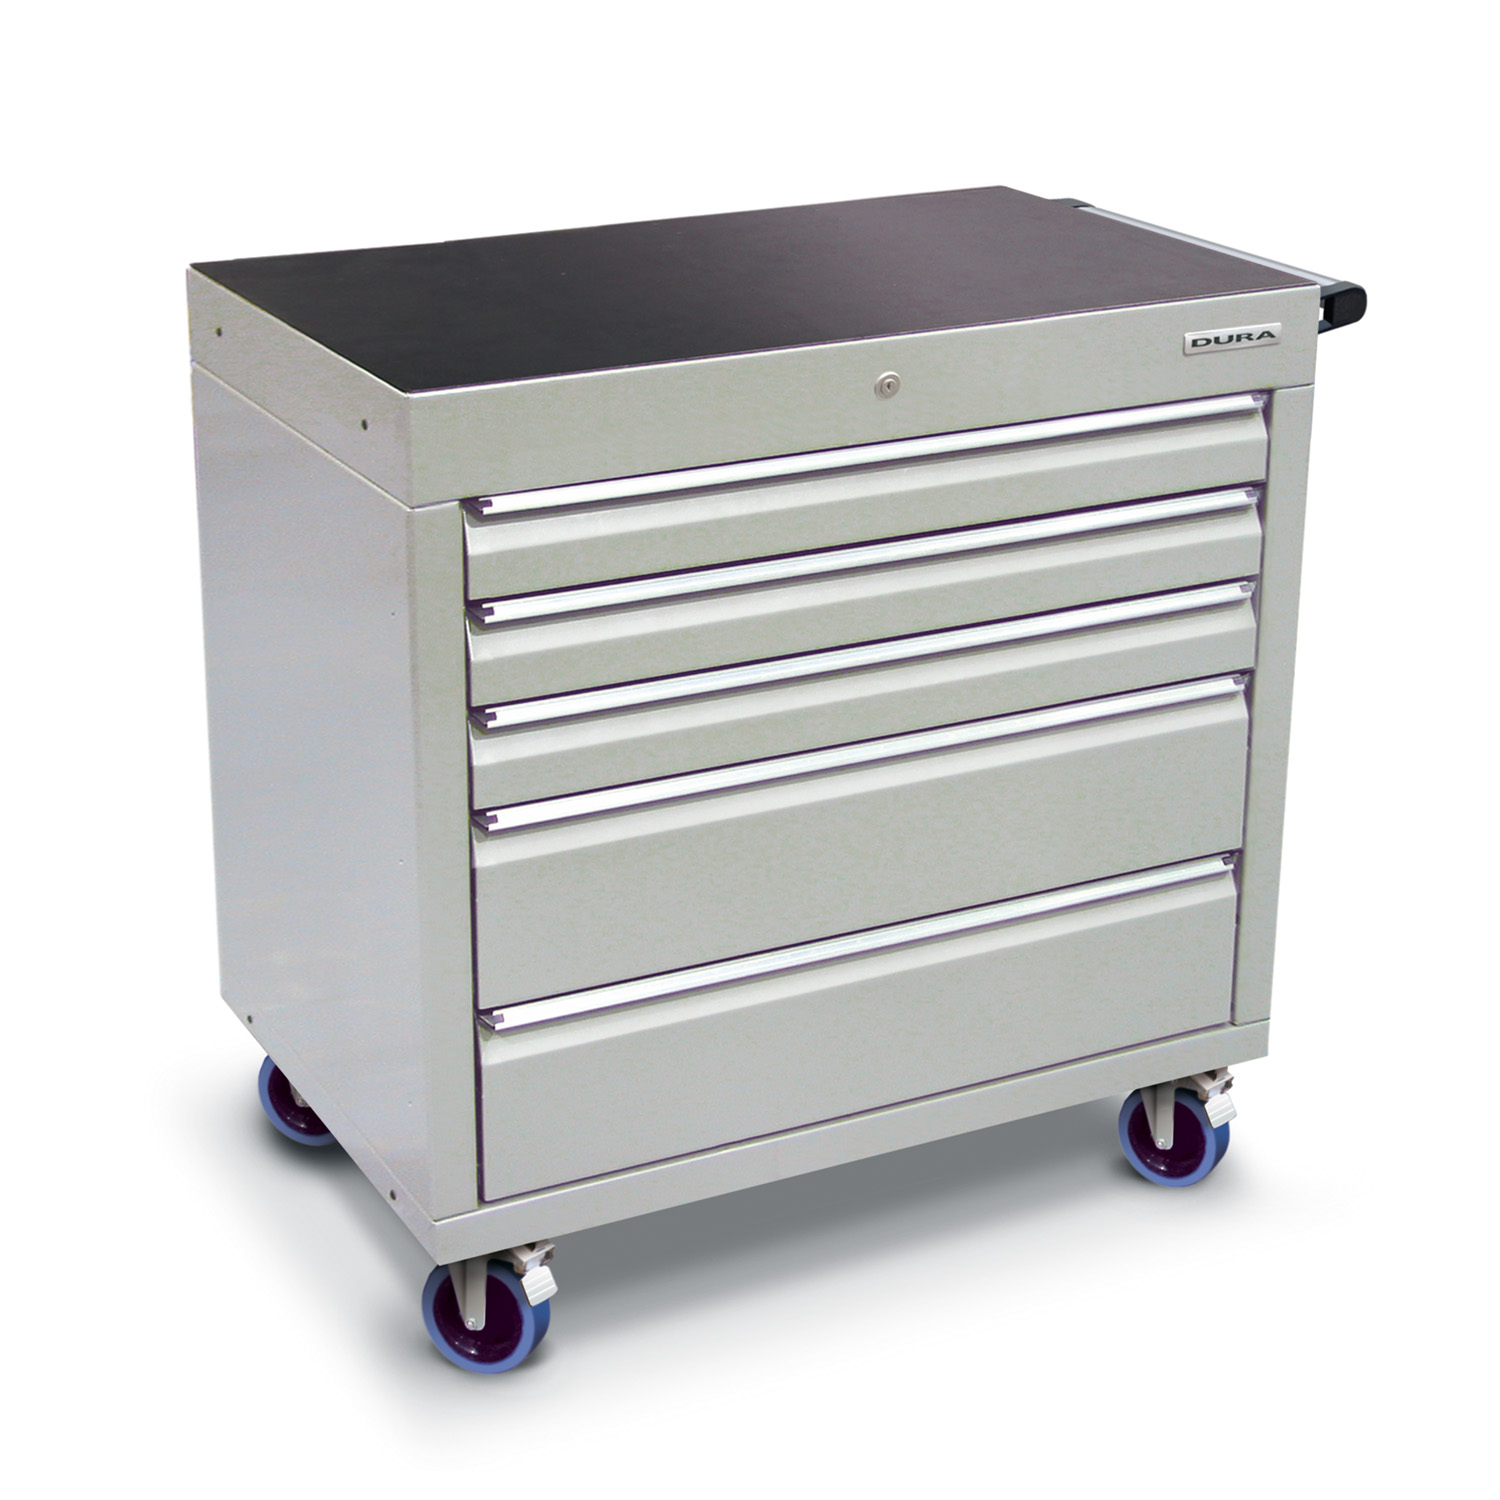 900 series cabinet with 5 drawers (3 medium, 2 large) and castors